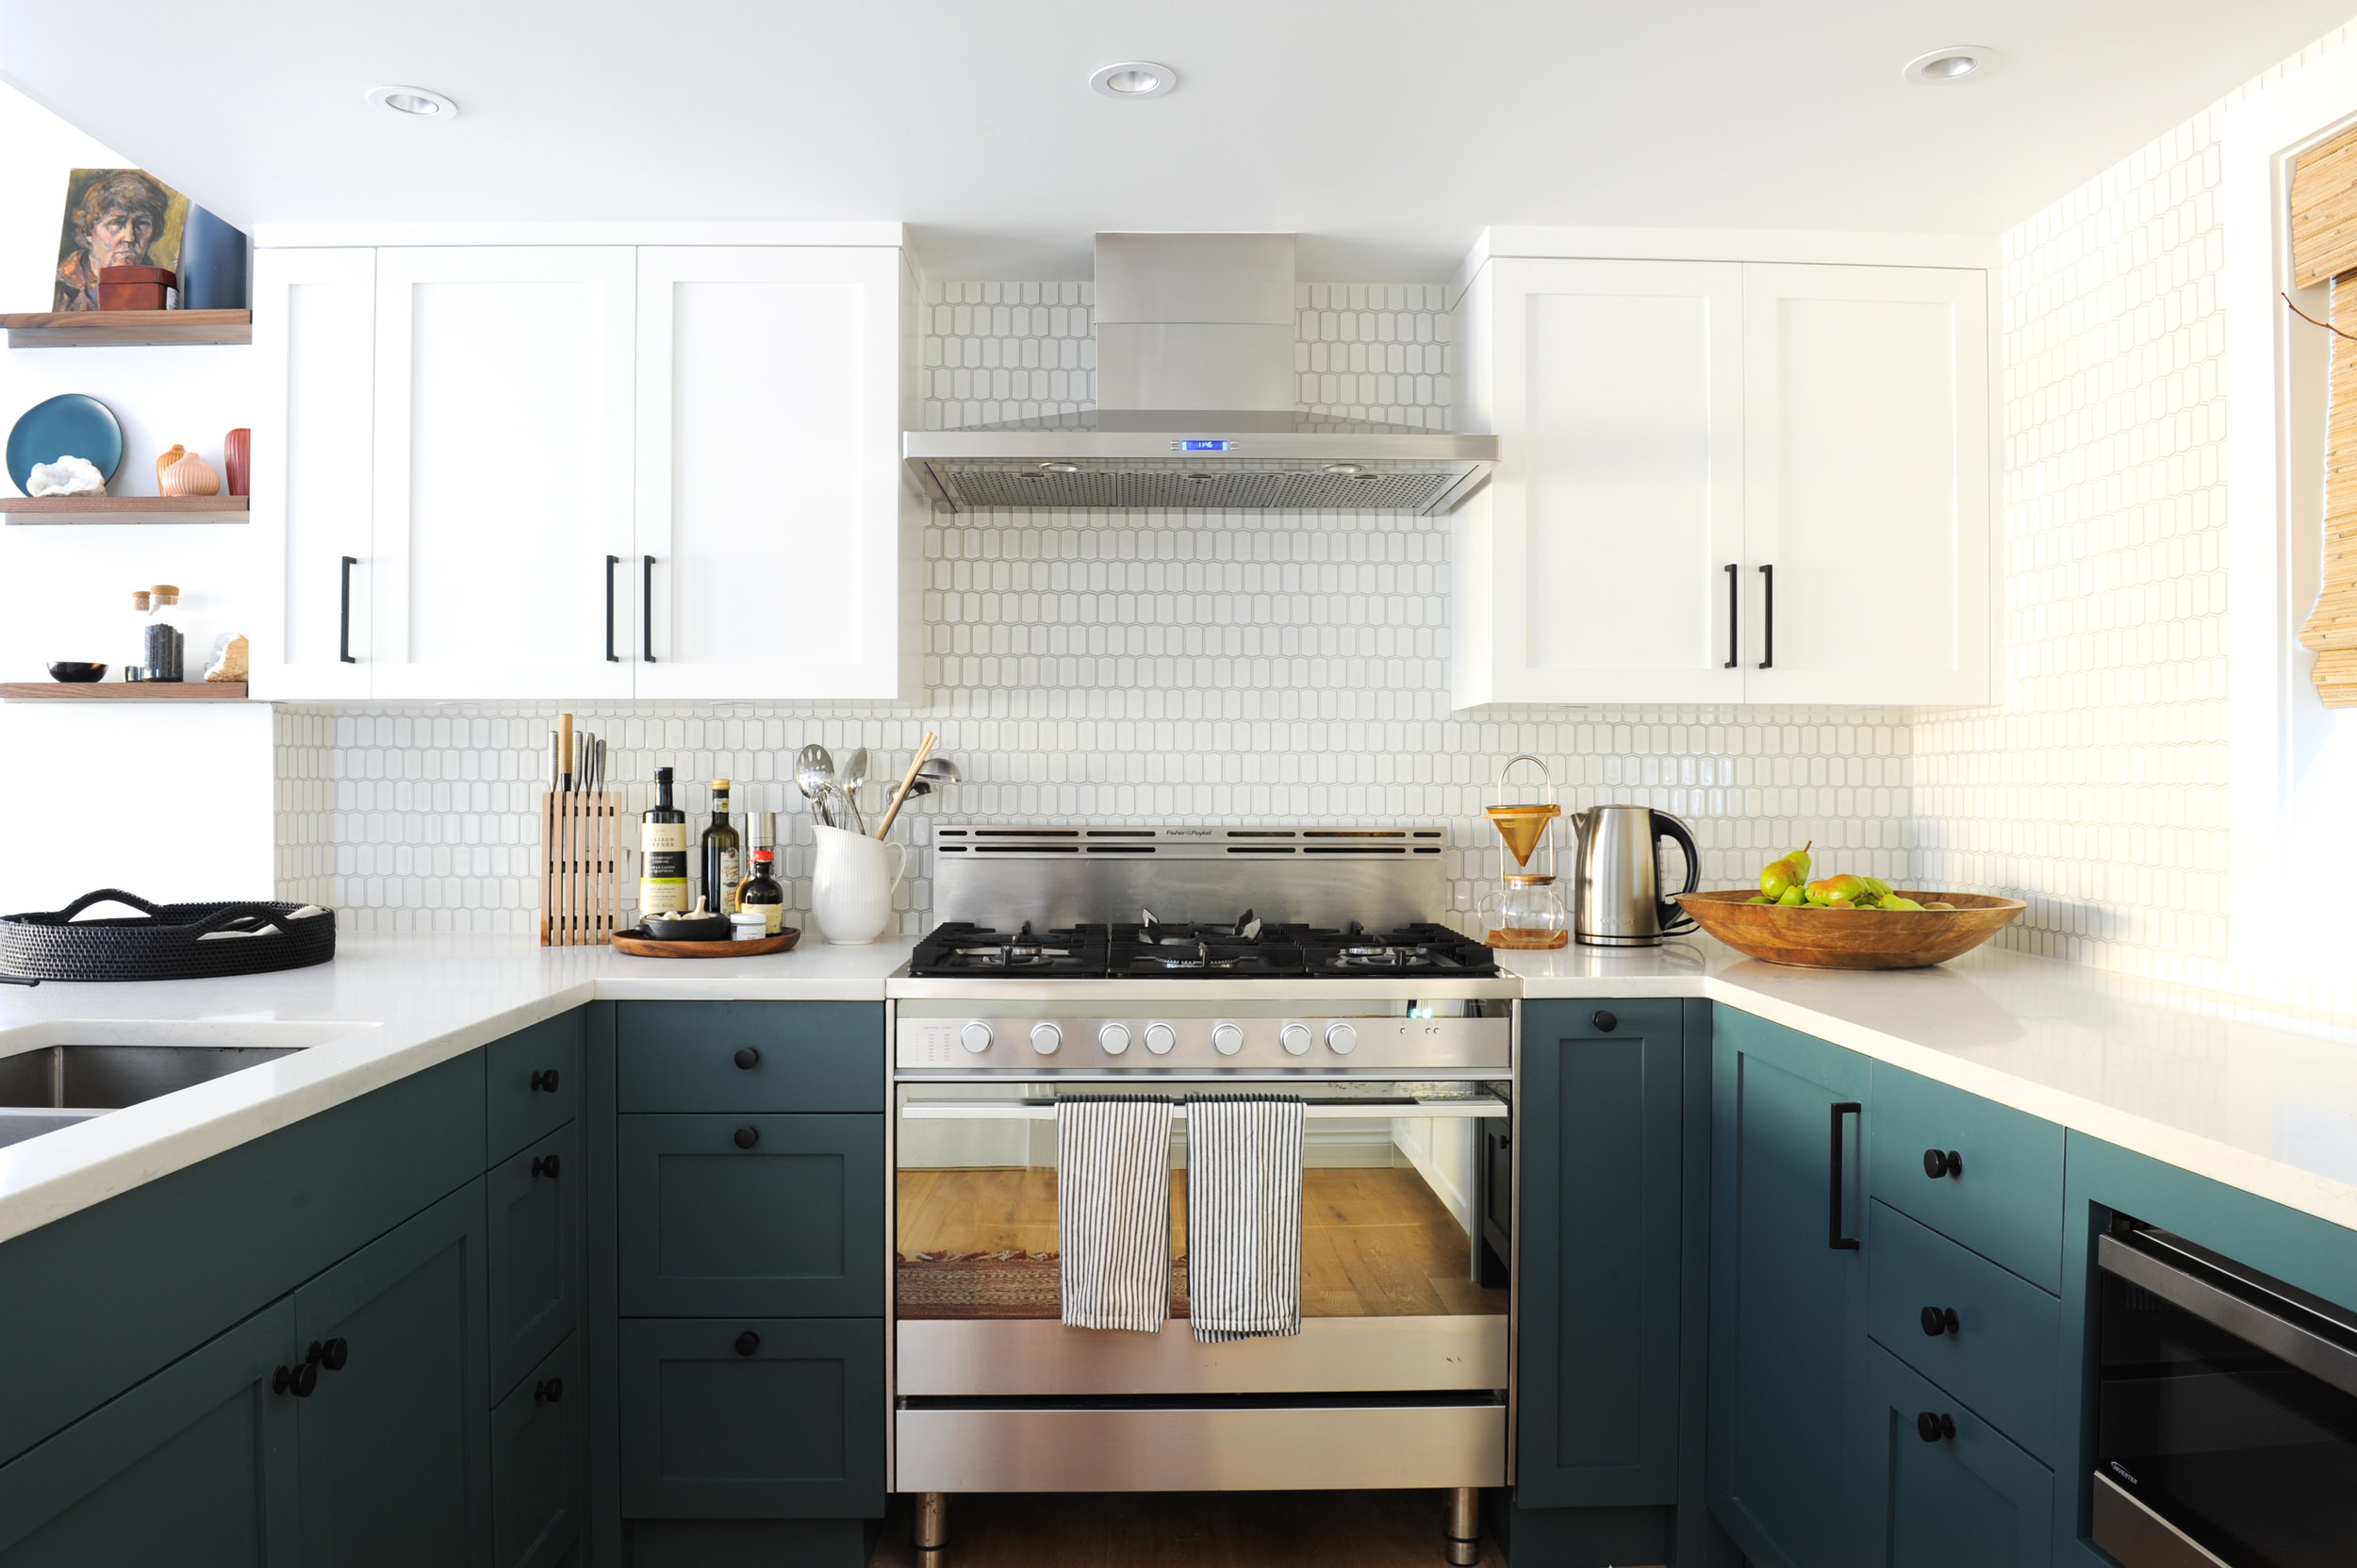 This kitchen is decorated with blue counters. A large gas stove is located in the centre and white cabinets hang on either side of the hood fan located above. The backsplash is made up of white tile.